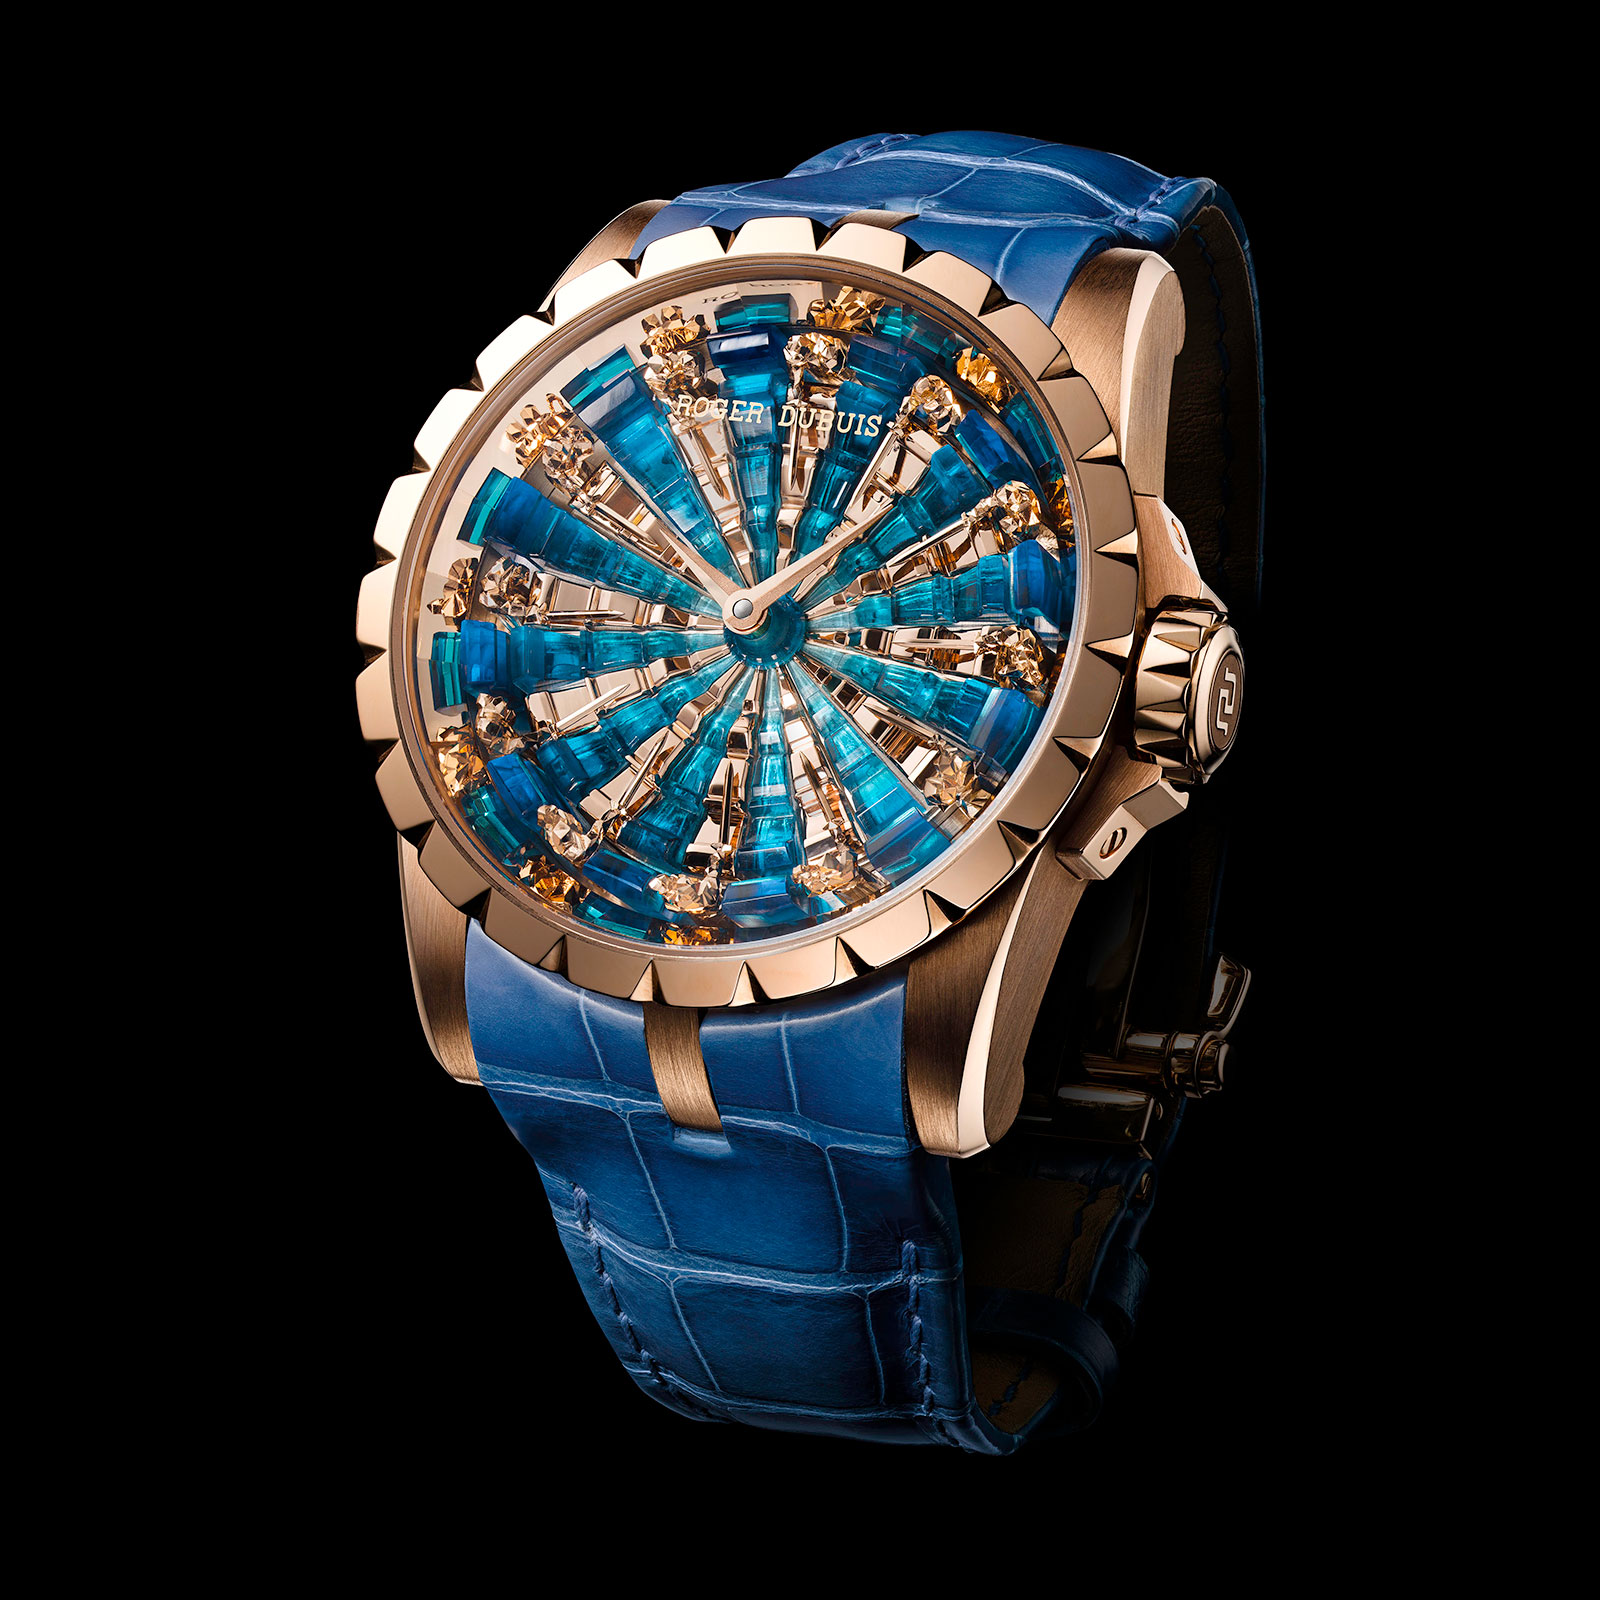 Roger Dubuis Knights of the Round Table III-1